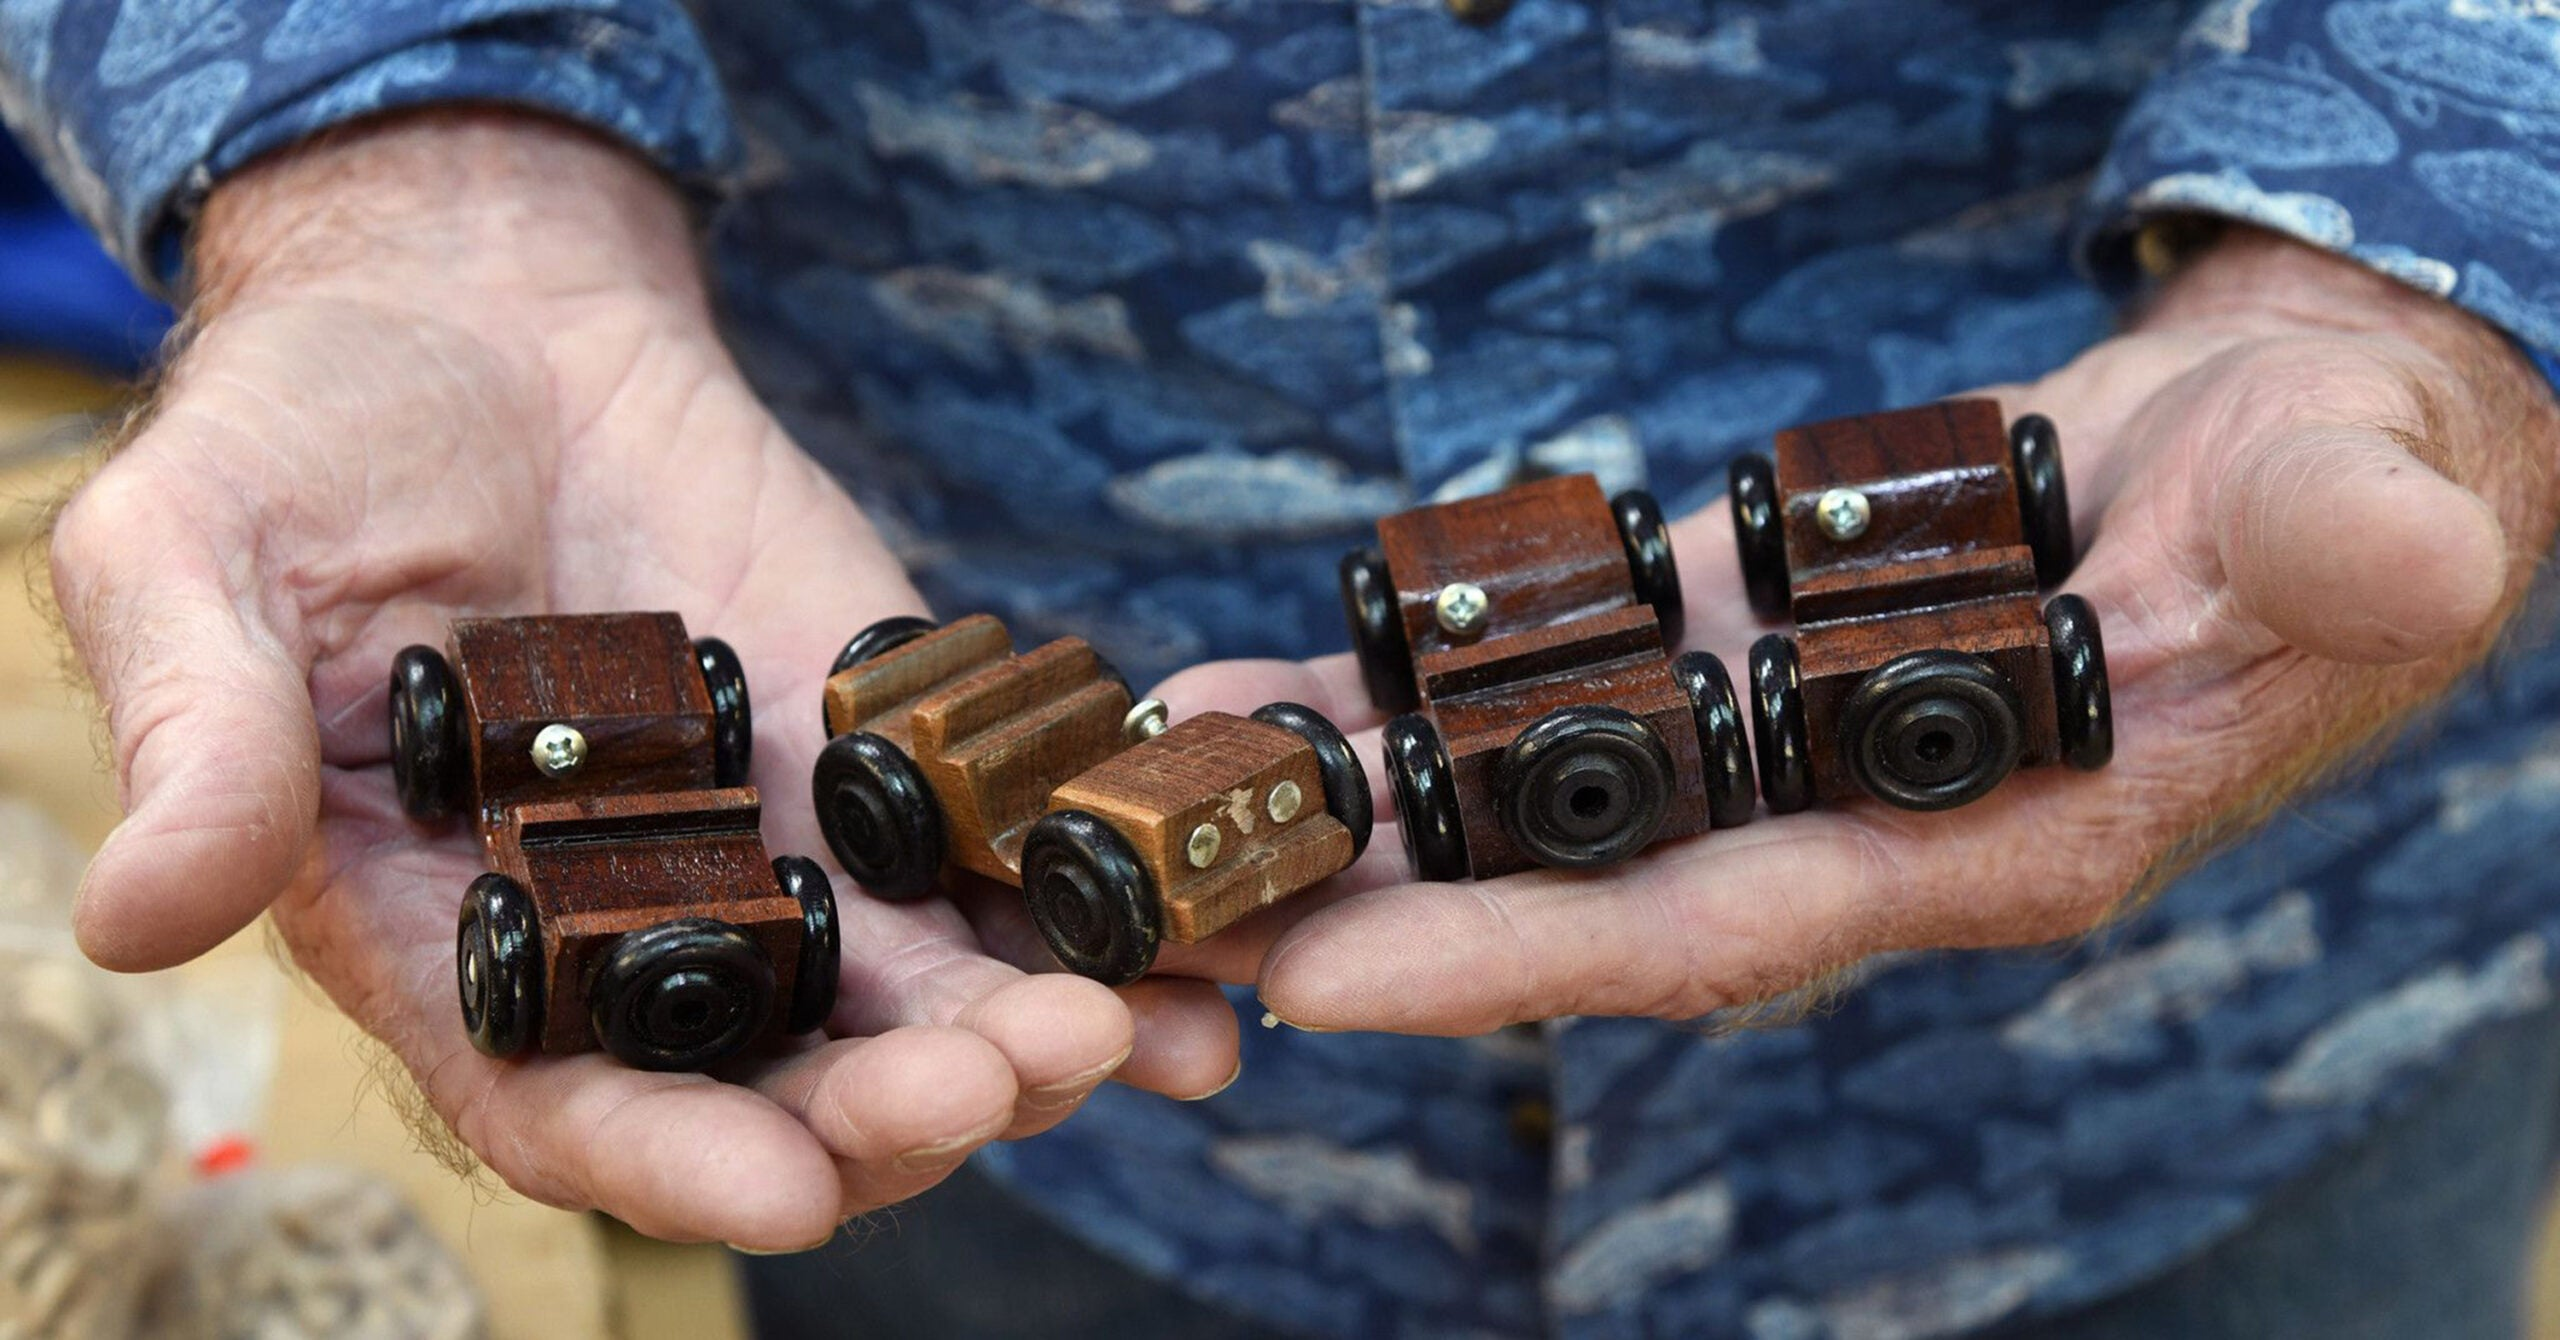 Real-life Santa Claus makes wooden tanks and jeeps for Toys for Tots